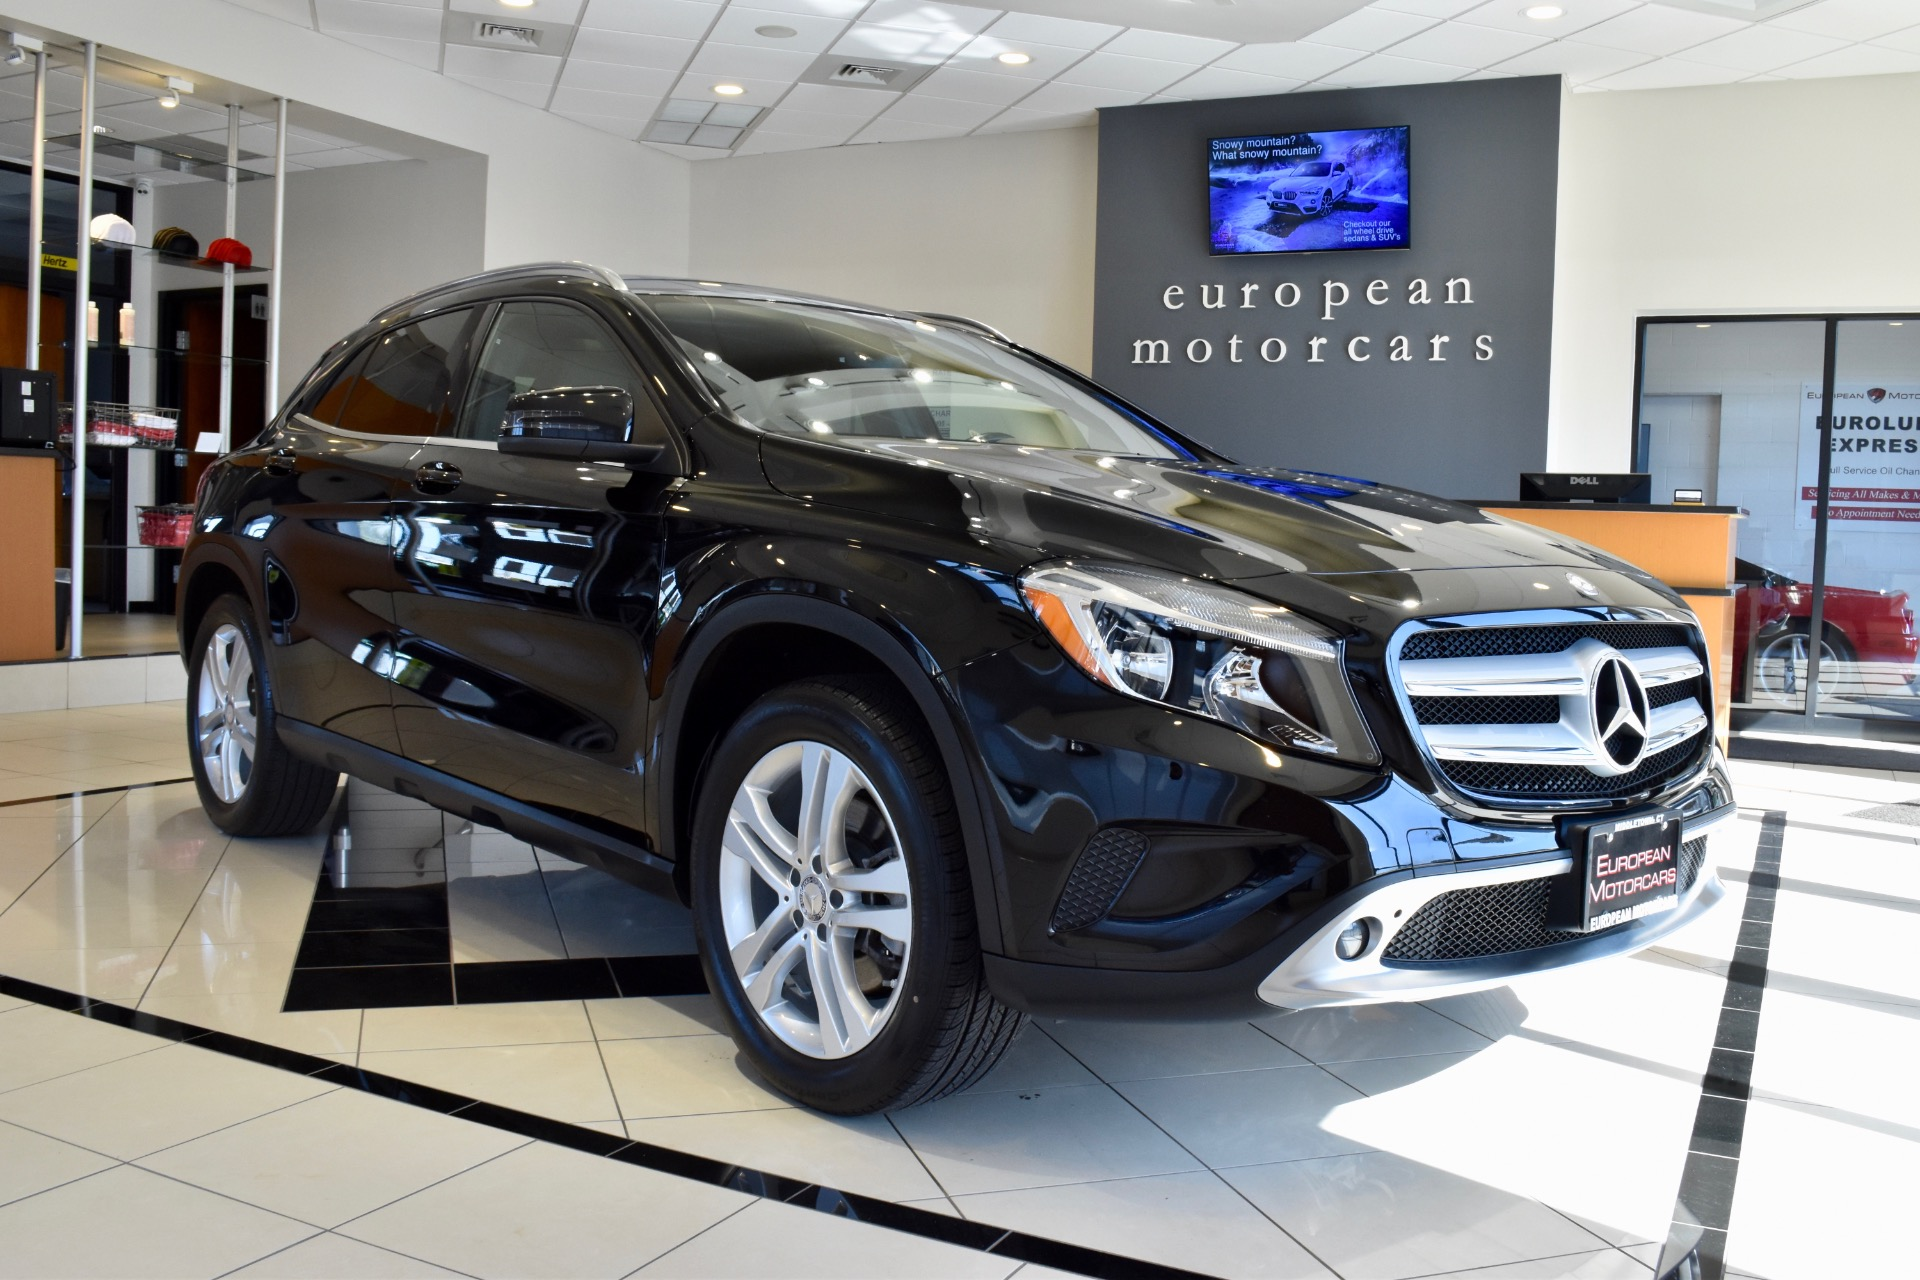 2015 mercedes benz gla gla 250 4matic for sale near for 2015 mercedes benz gla 250 for sale